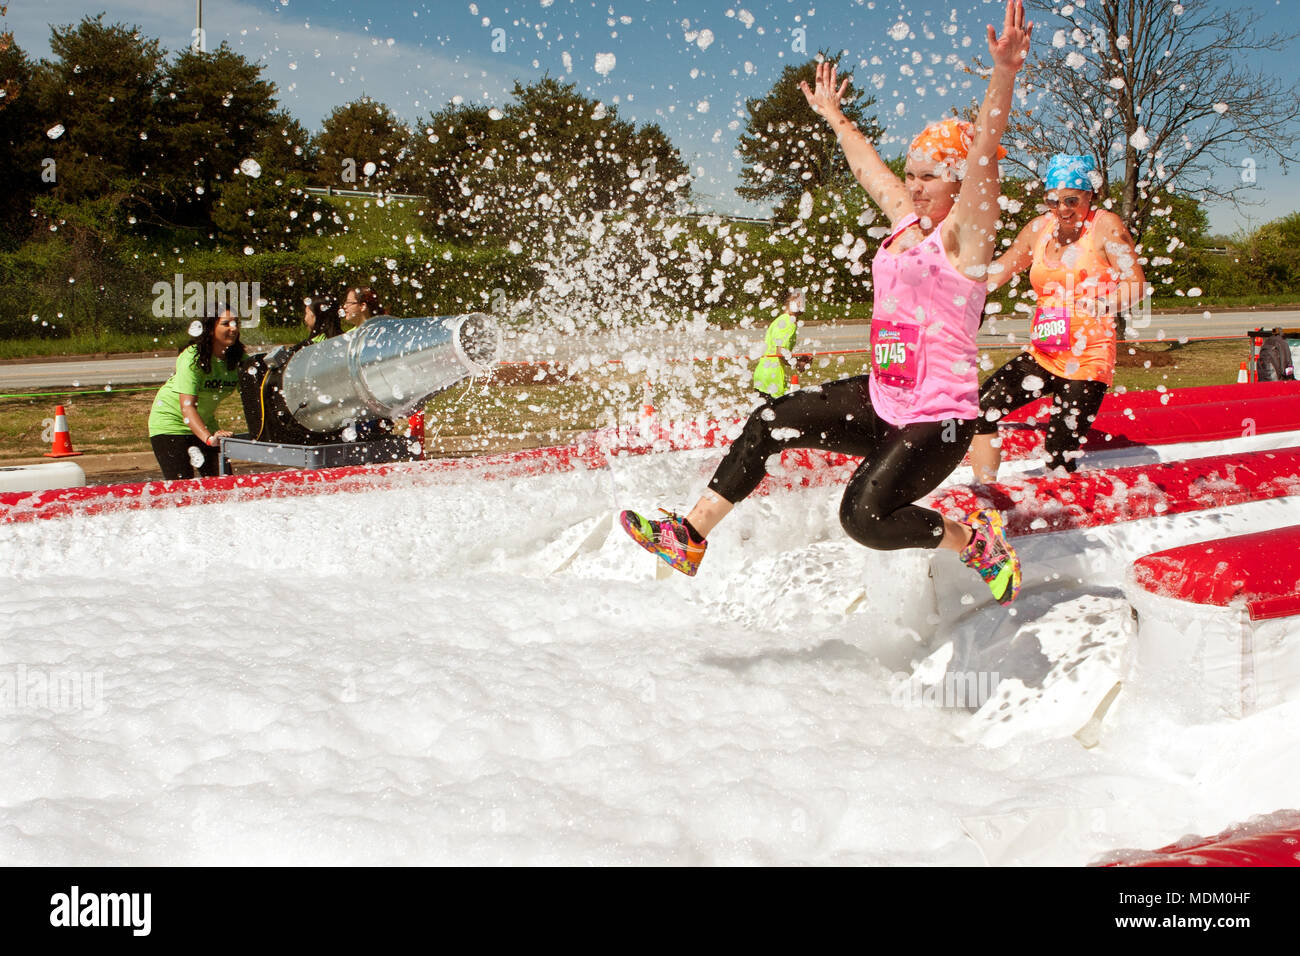 Young women get sprayed with bubbles jumping into a foam pit, as they take part in the Ridiculous Obstacle Challenge on April 5, 2014 in Atlanta, GA. - Stock Image